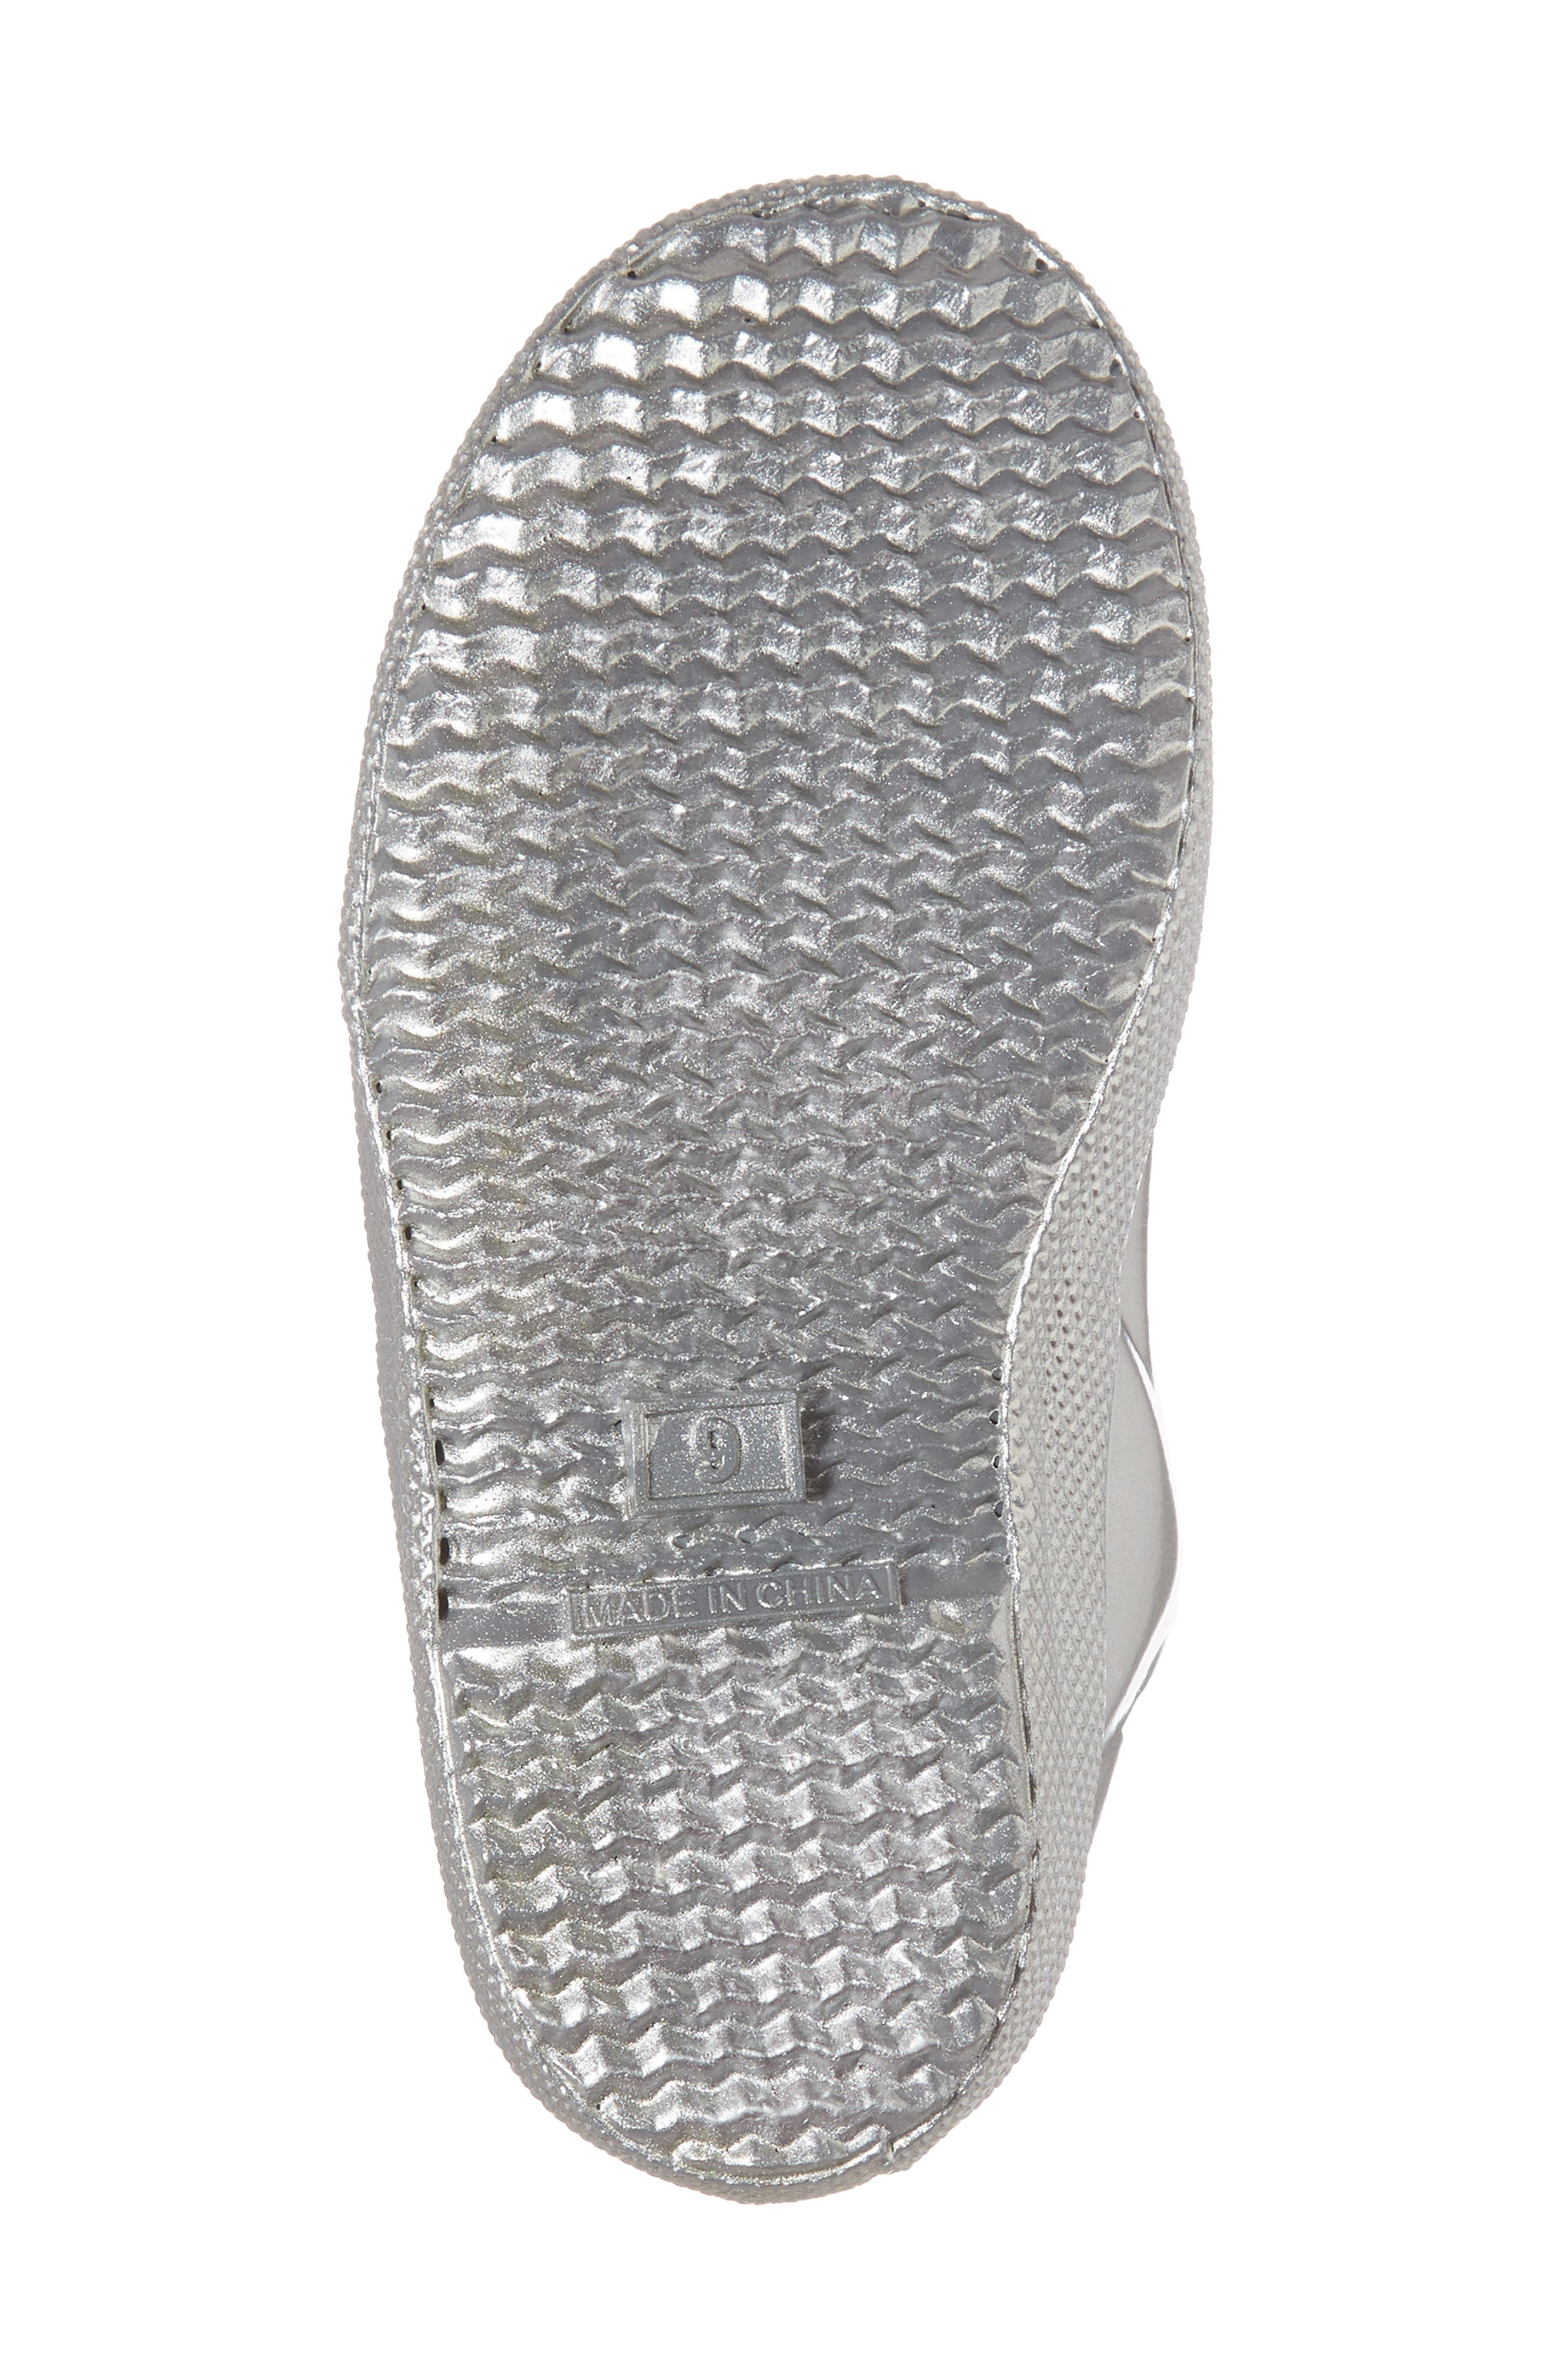 First Classic Metallic Rain Boot,                             Alternate thumbnail 6, color,                             SILVER